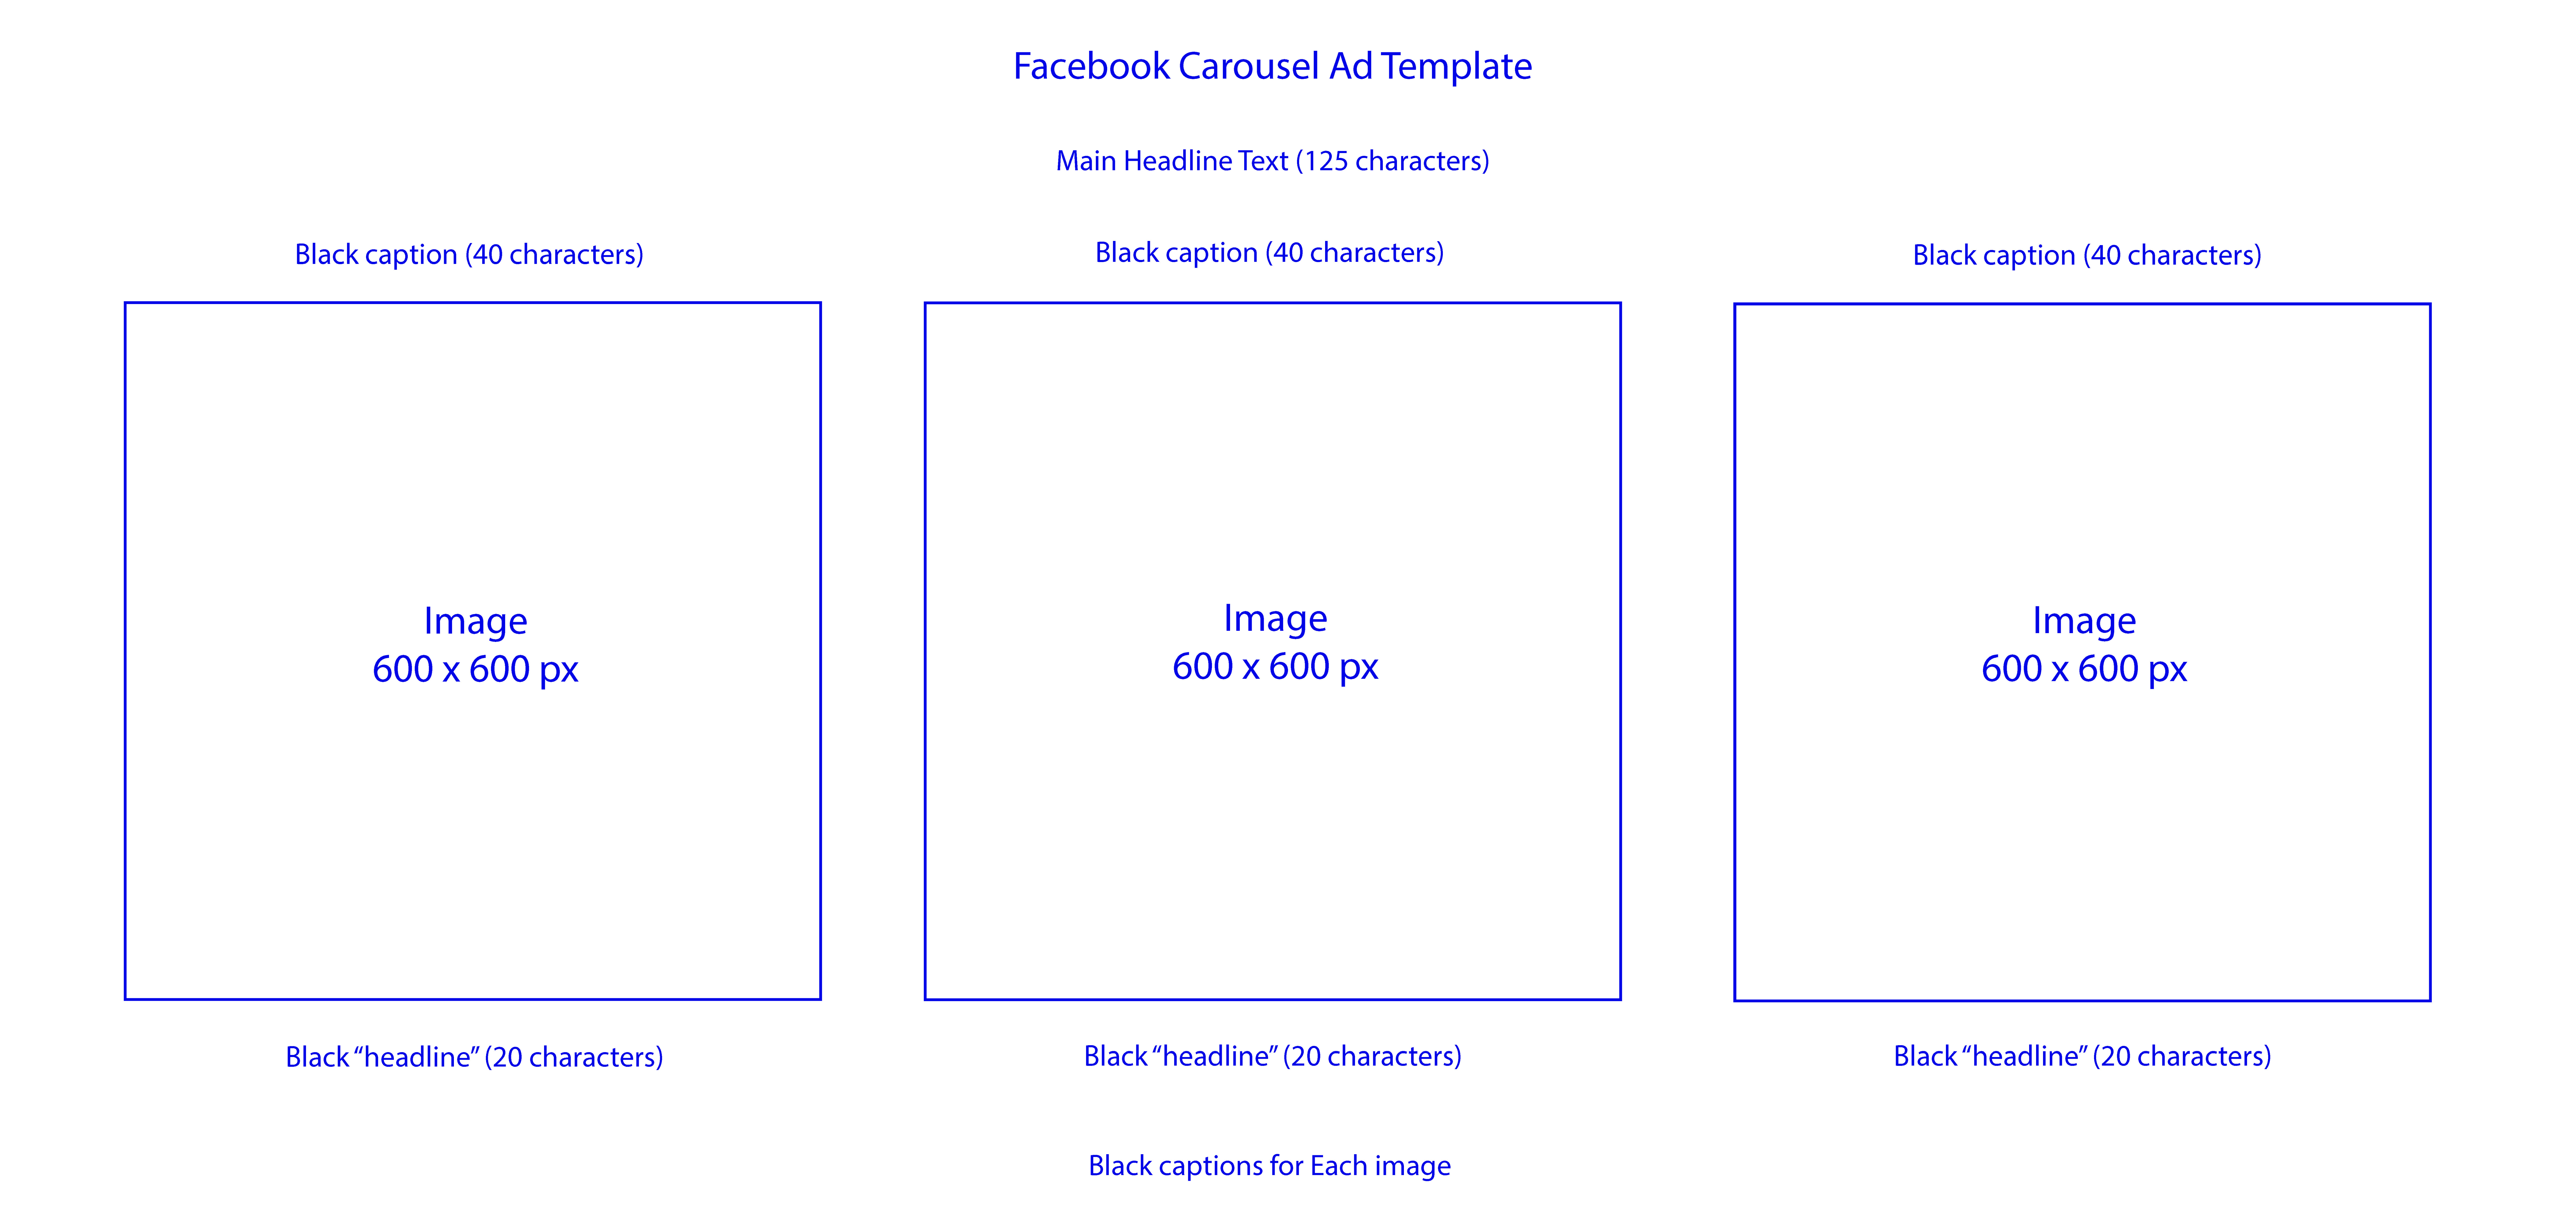 https://marketbroadband.lorexexpress.com/images/products_gallery_images/367_Facebook_Template.jpg